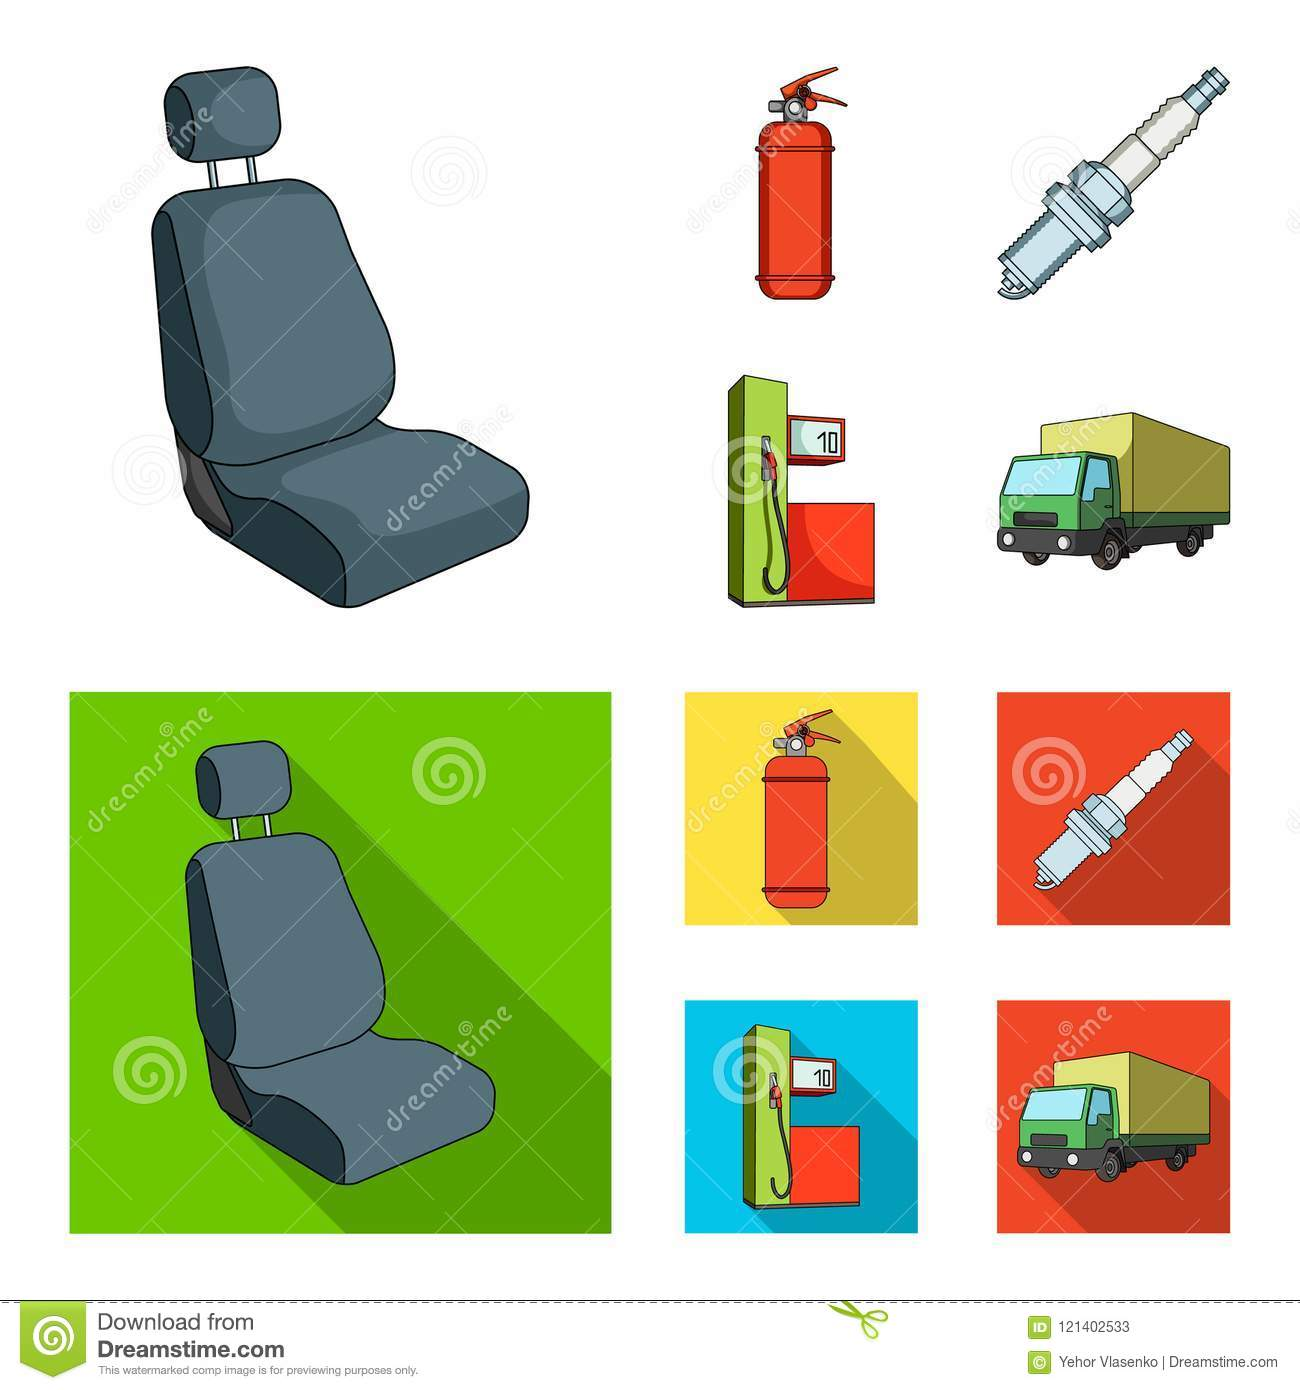 Chair With Headrest Fire Extinguisher Car Candle Petrol Station Set Collection